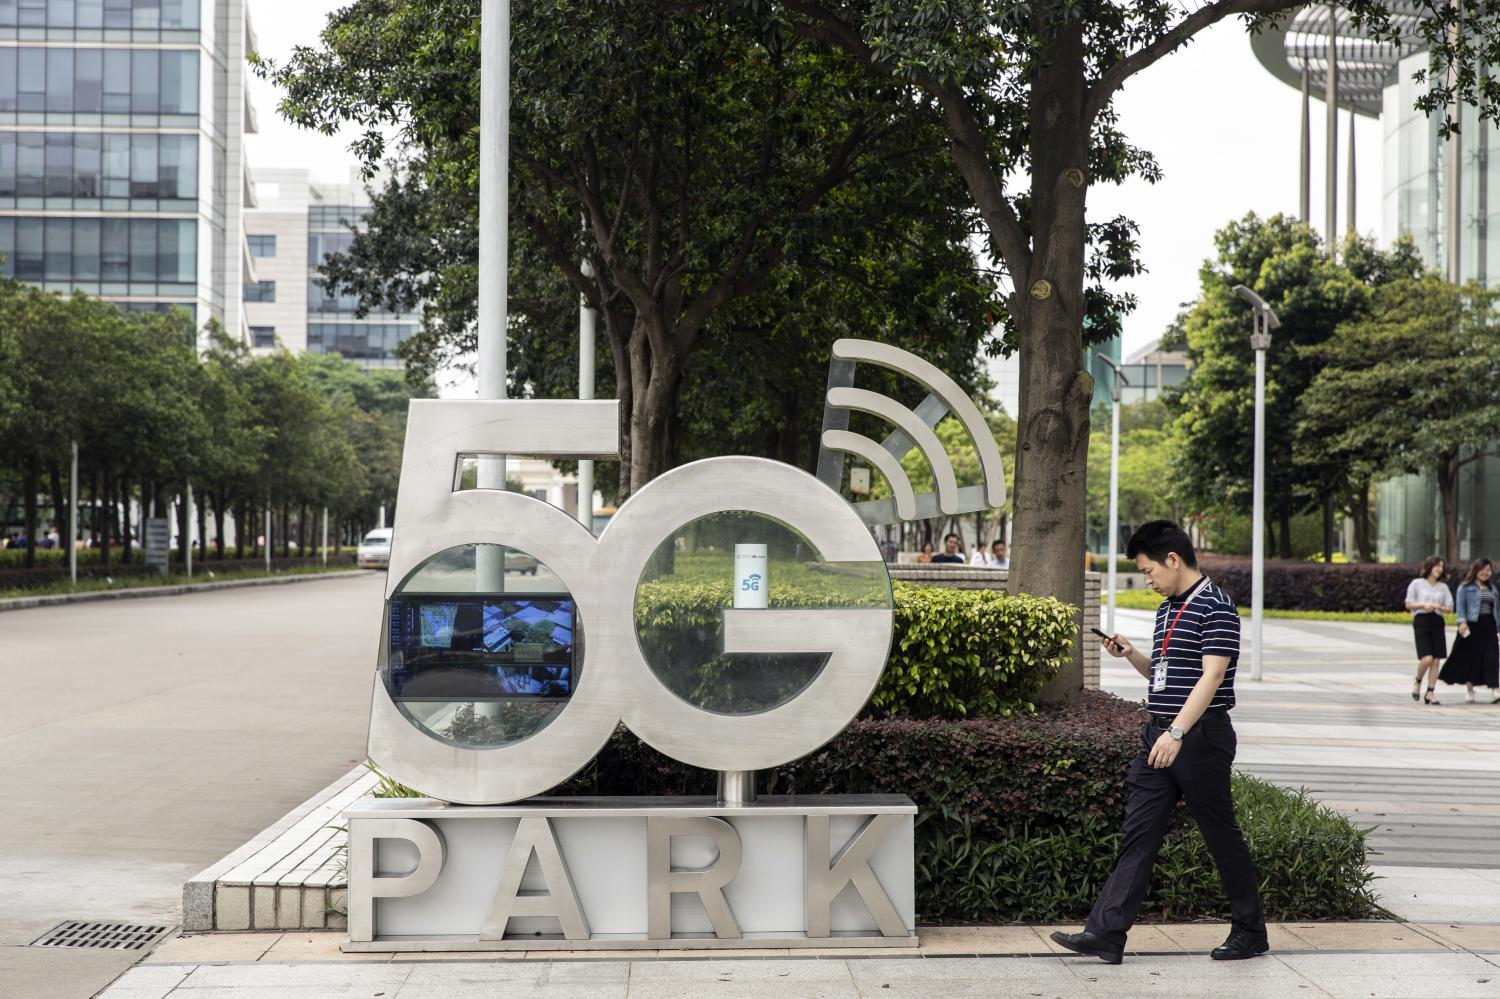 Huawei's 5G Park in Shenzhen. Huawei agreed to work with the NBTC and Chulalongkorn University on a 5G test site.(Bloomberg photo)